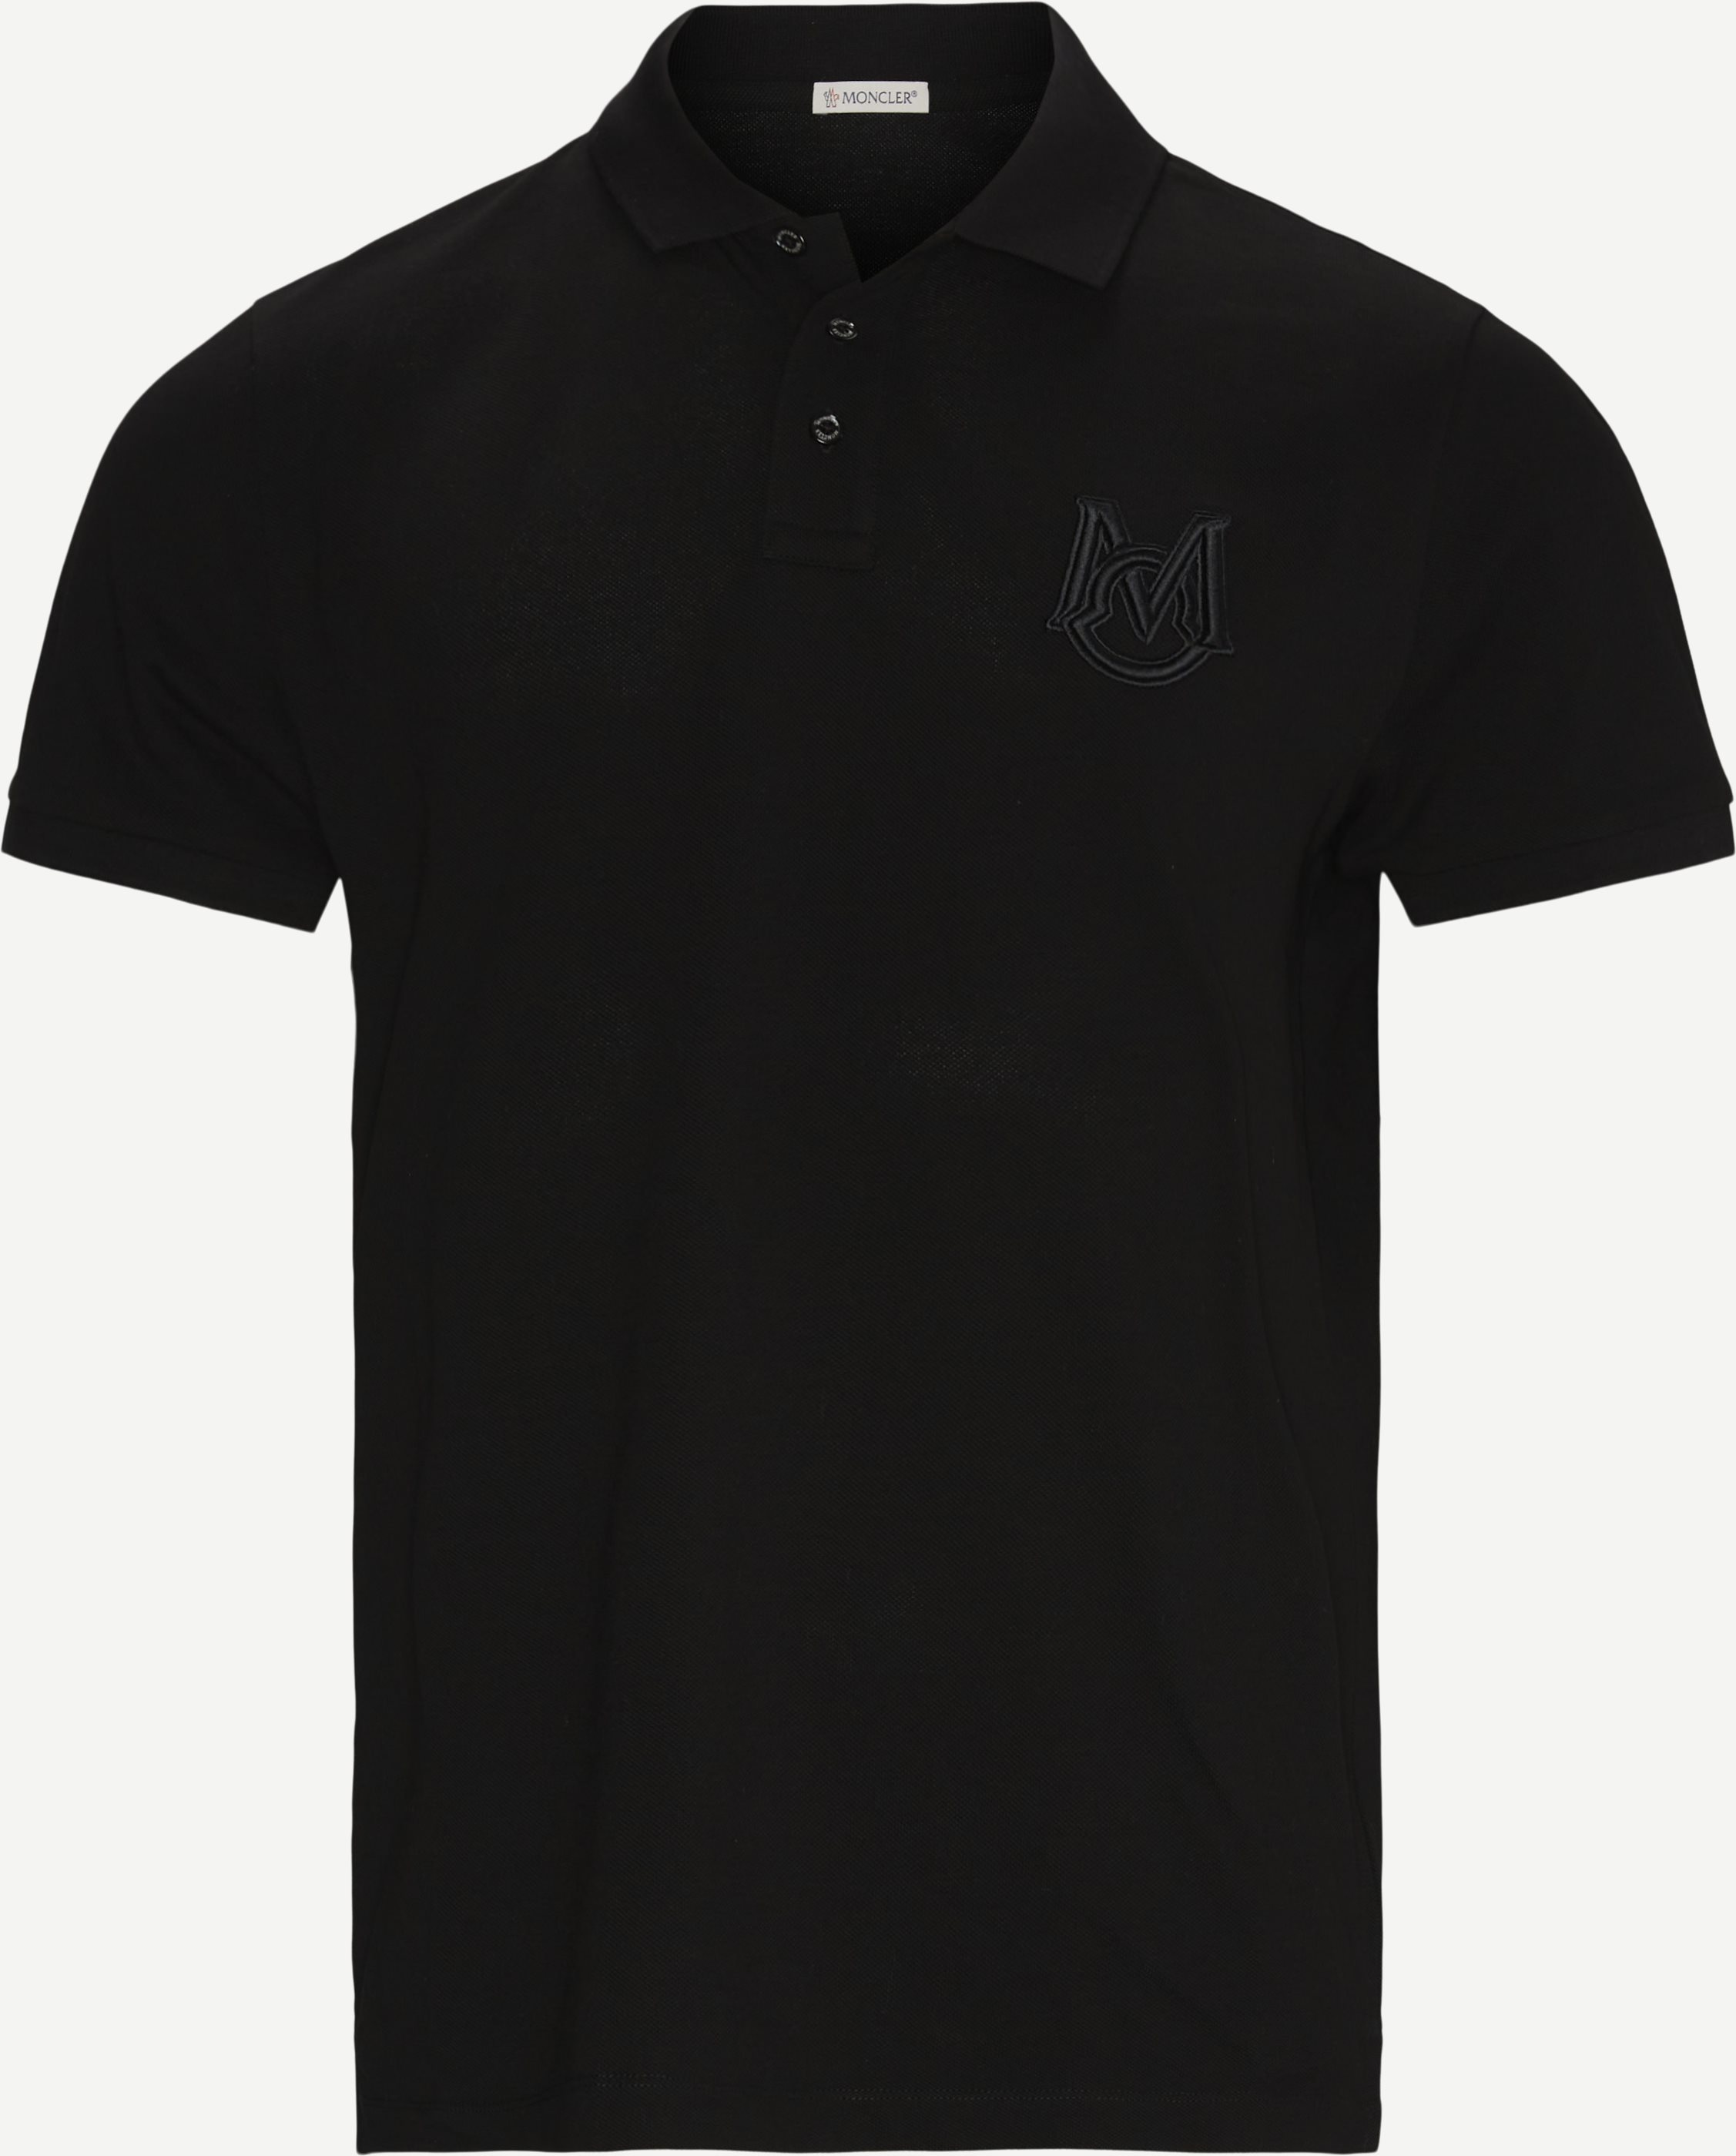 Polo Manica C T-shirt - T-shirts - Regular - Black